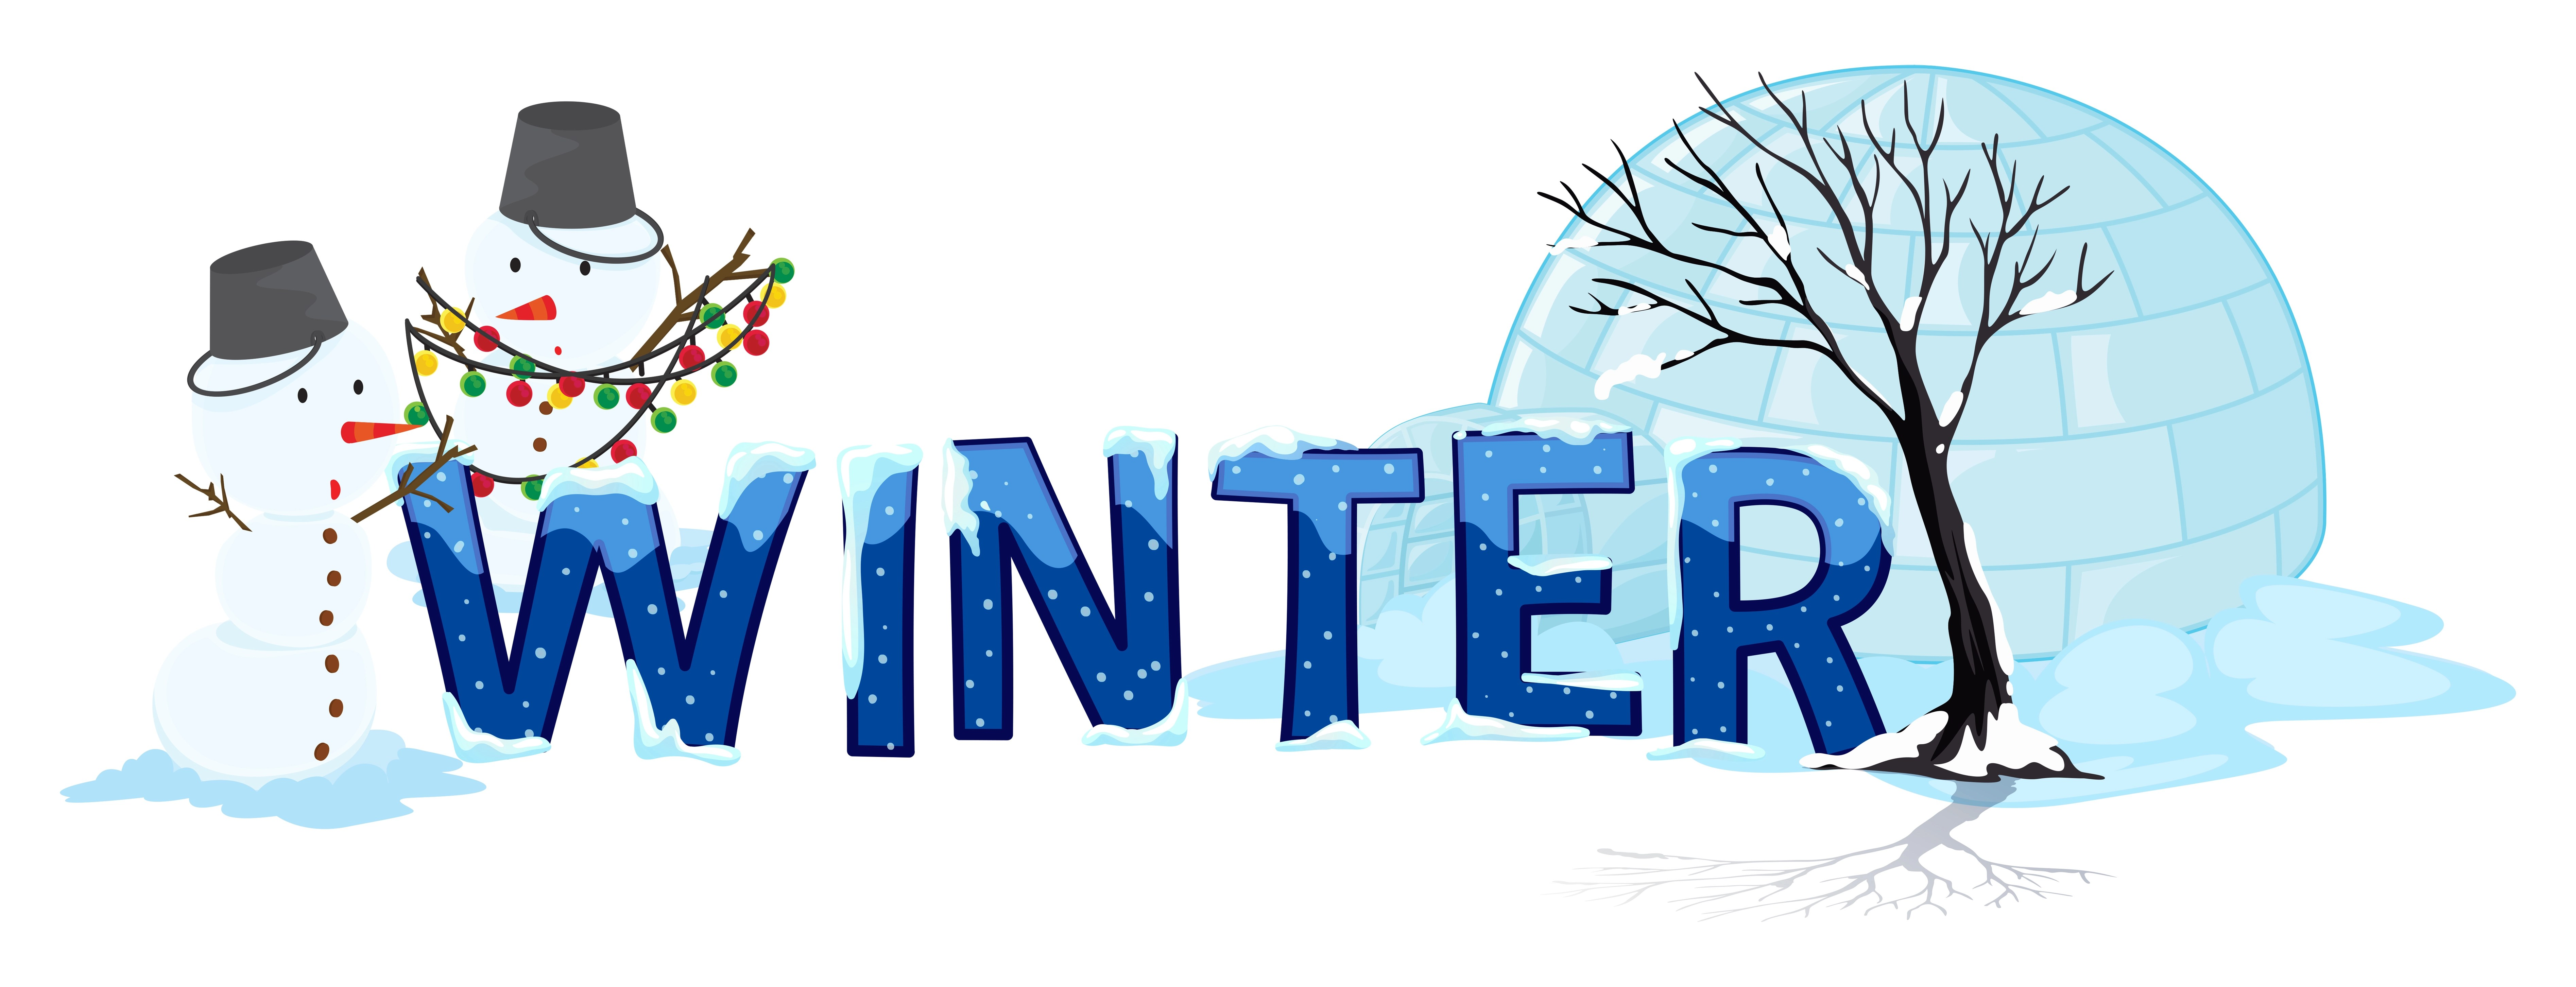 Font Design With Word Winter